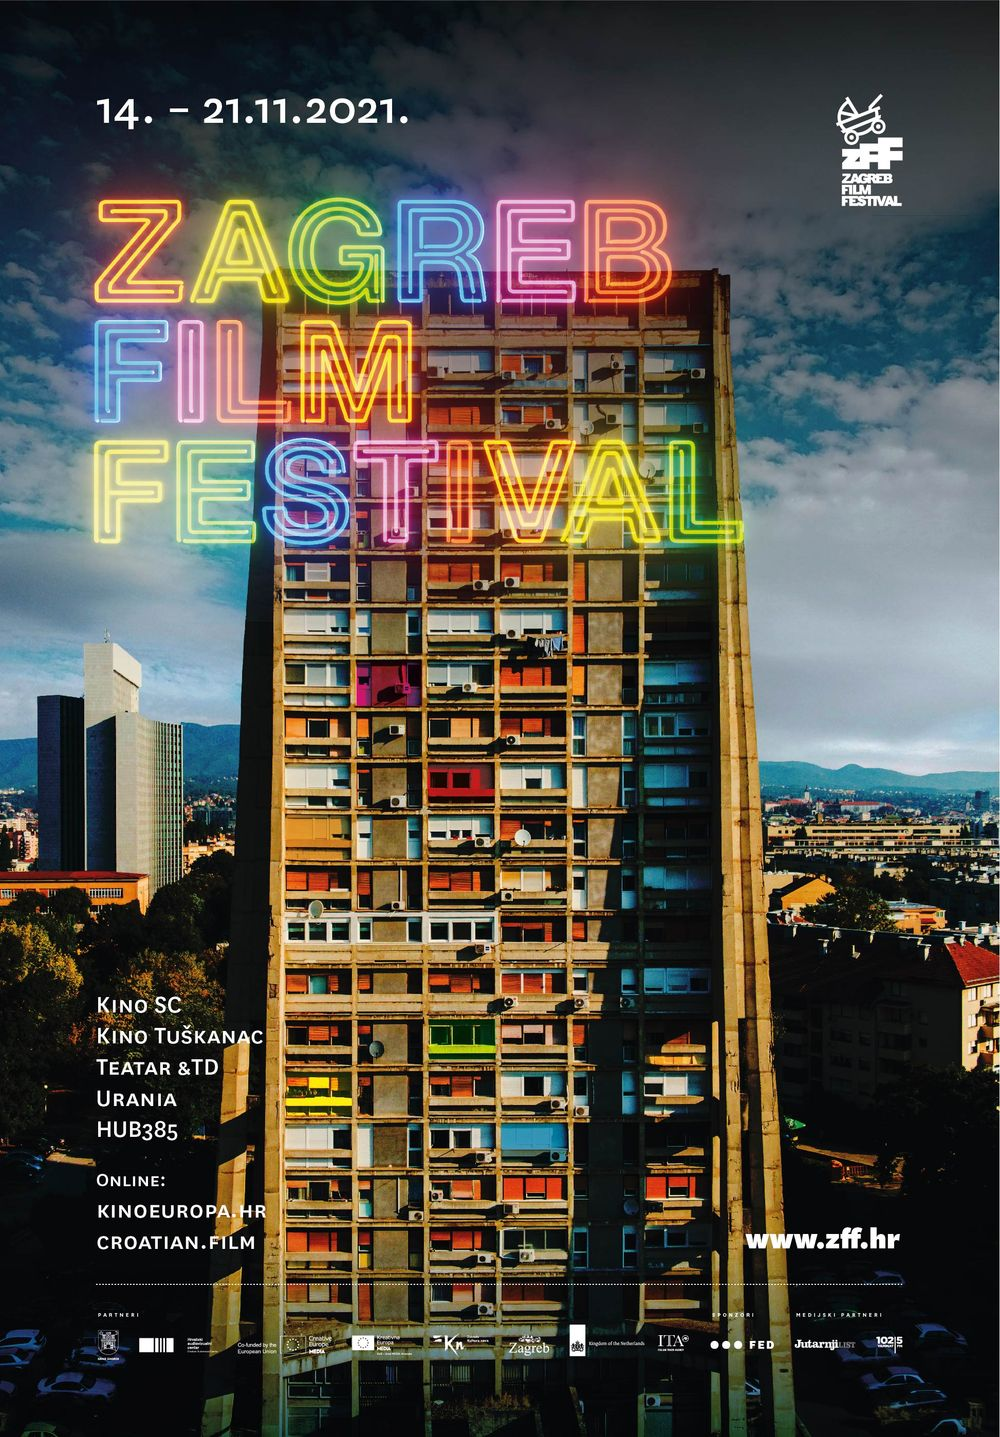 FIRST HITS REVEALED AHEAD OF THE 19th ZAGREB FILM FESTIVAL